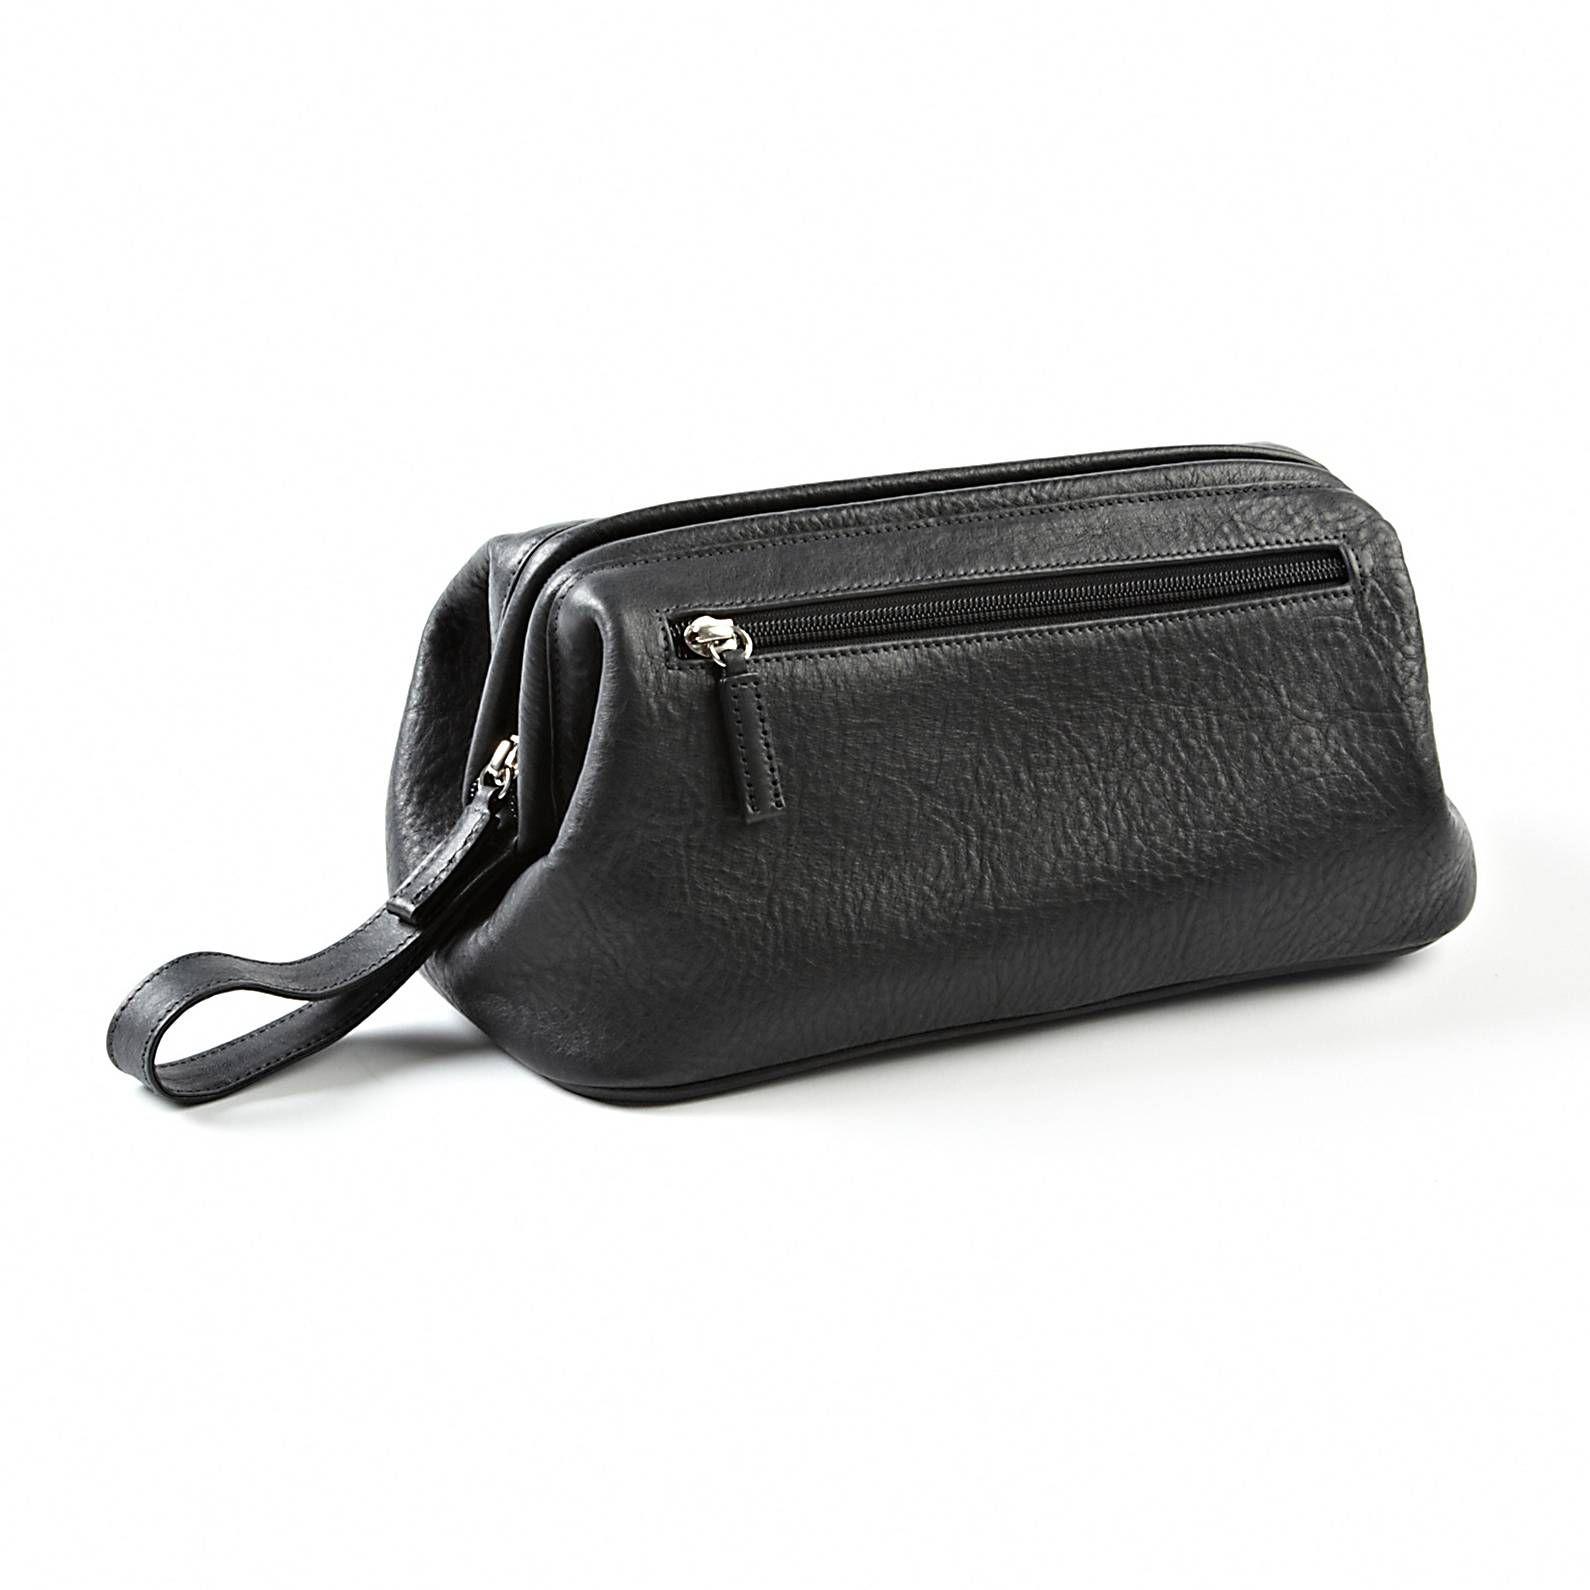 Rustic Black Leather Framed Toiletry Bag  e8f02a6b3917c